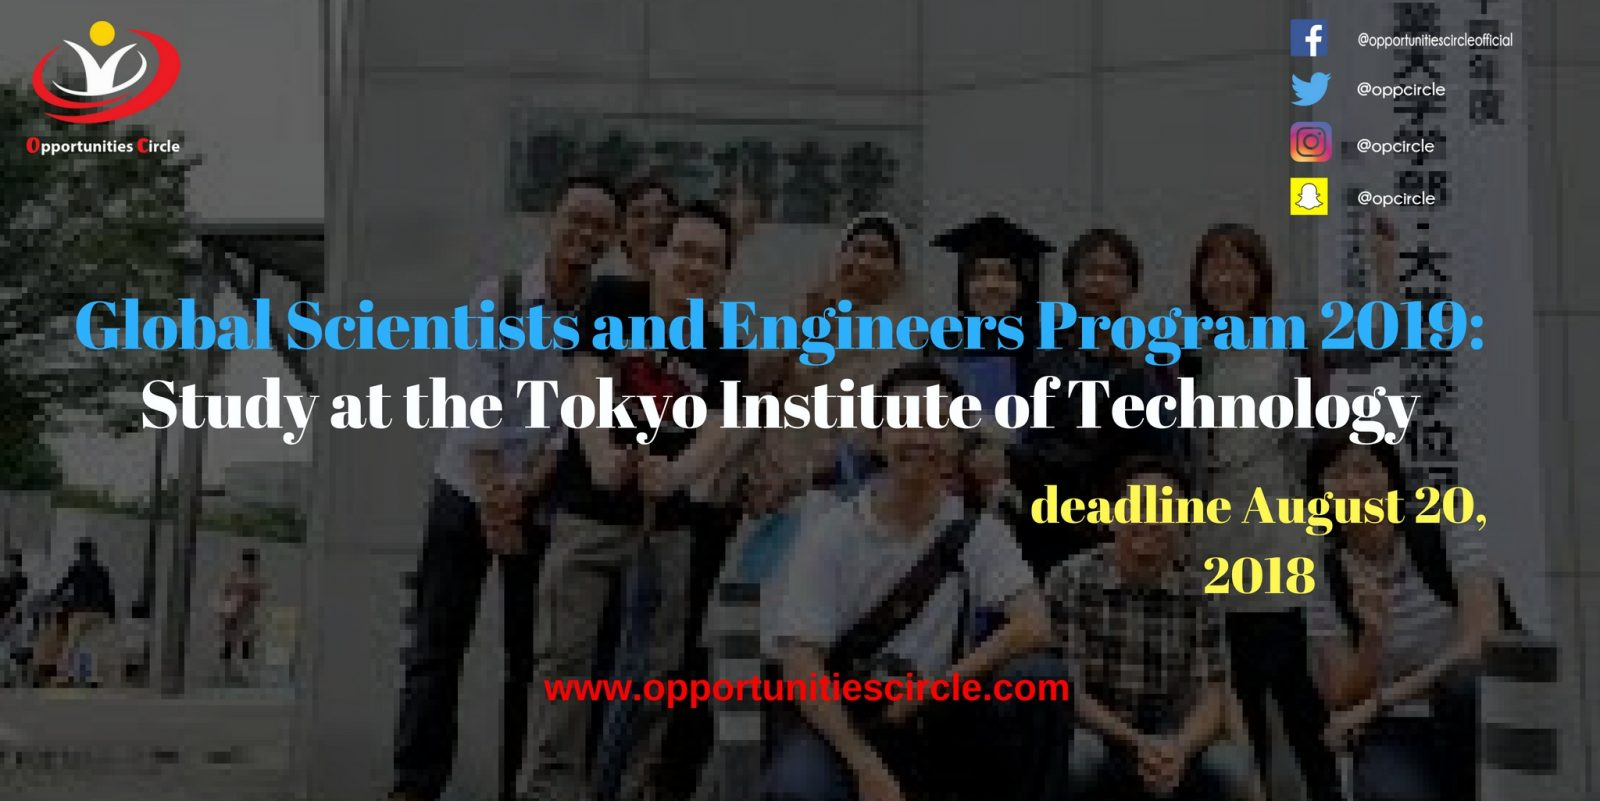 Global Scientists and Engineers Program 2019 - Global Scientists and Engineers Program 2019: Study at the Tokyo Institute of Technology